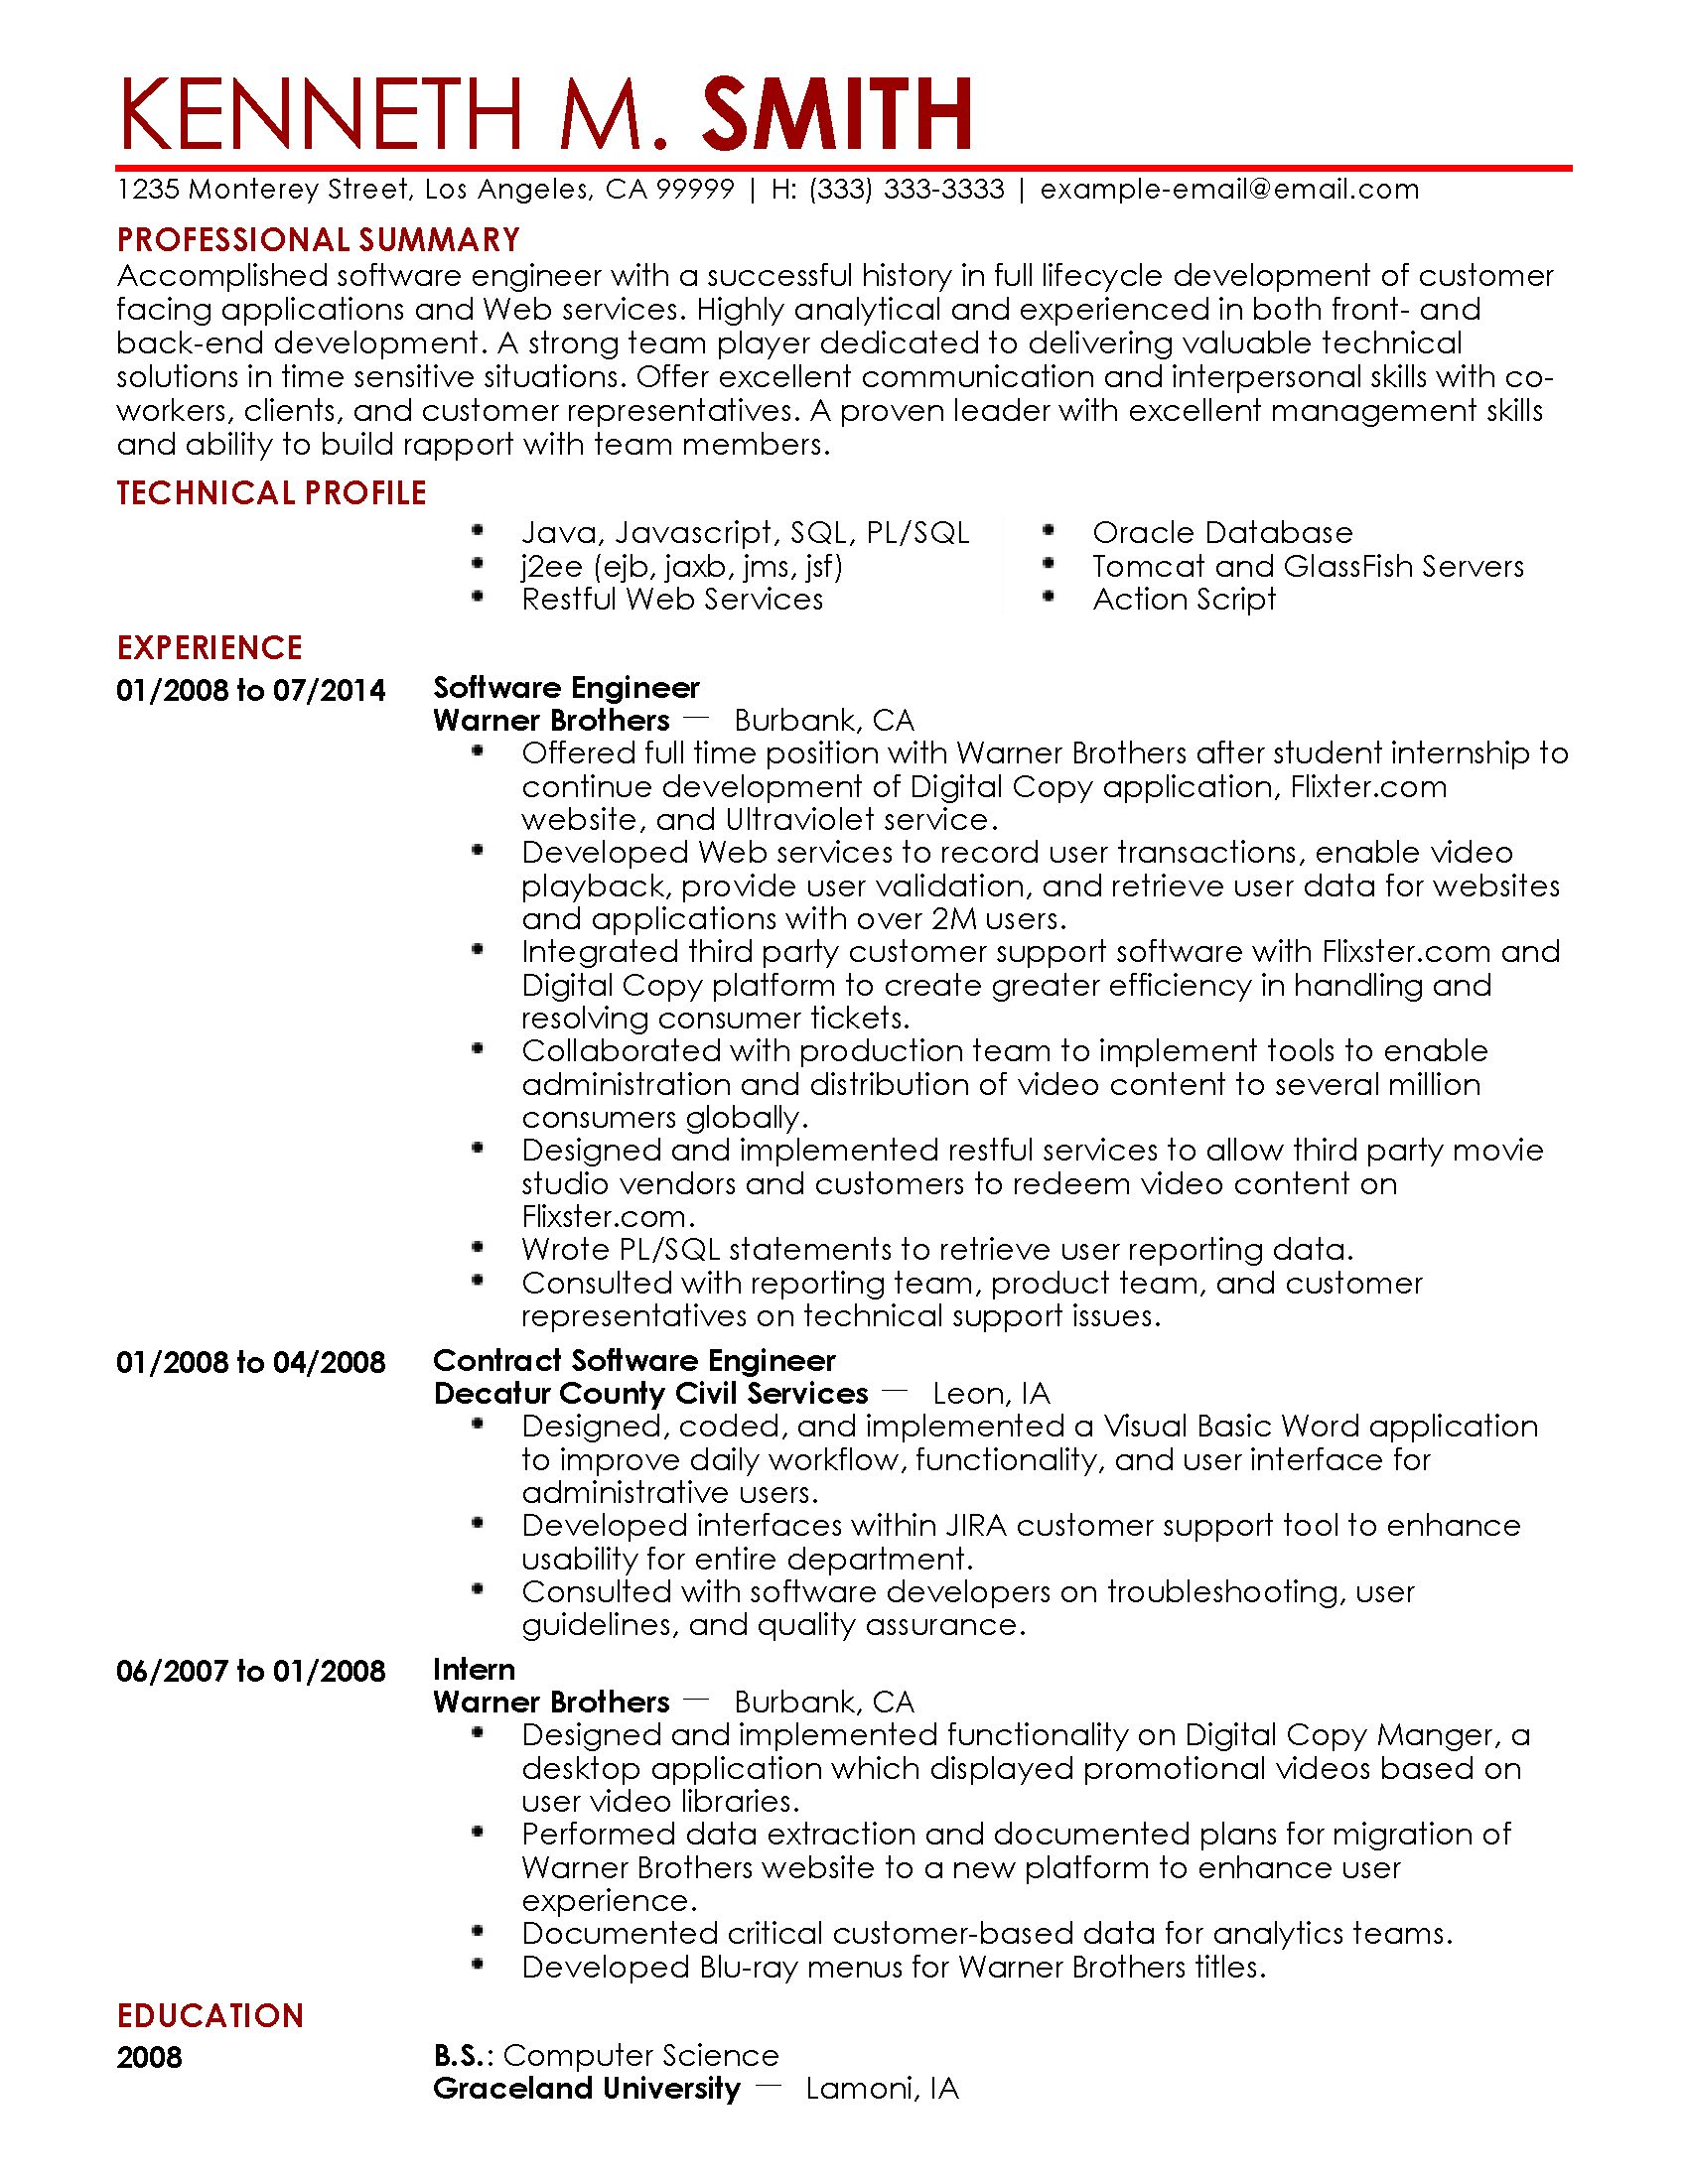 Resume Format For 1 Year Experienced Software Developer Professional Software Engineer Templates To Showcase Your